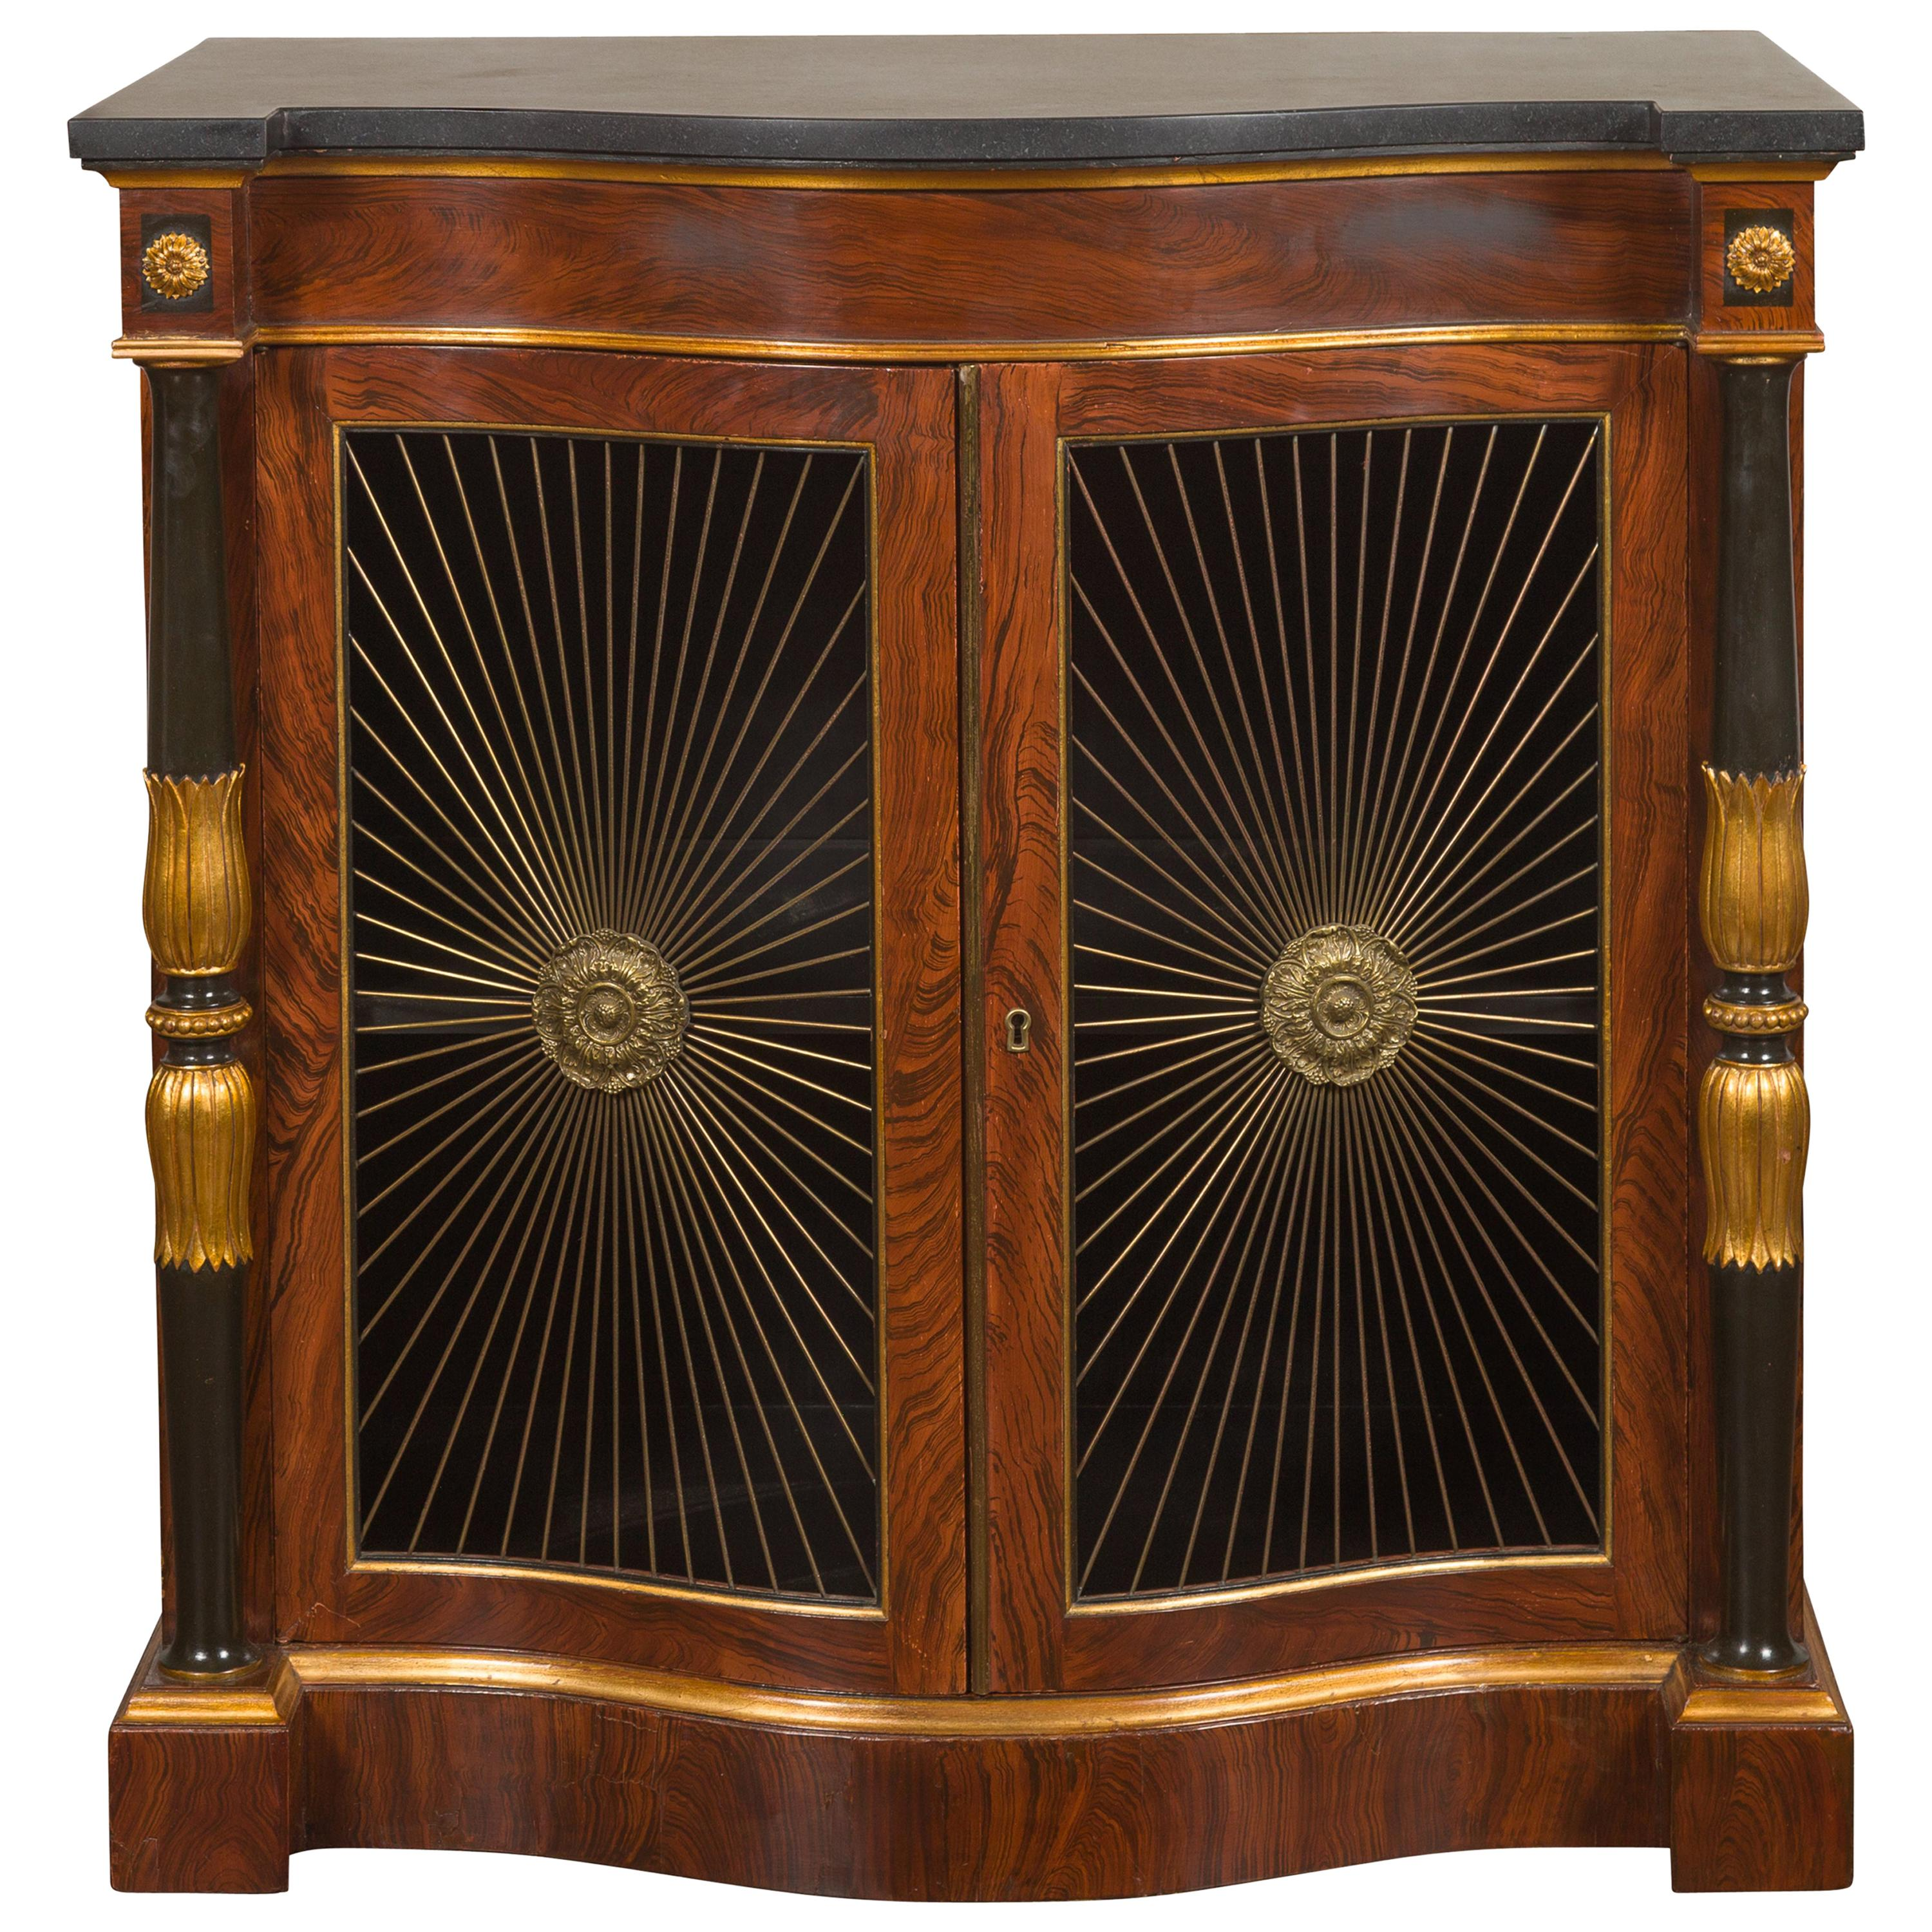 English Regency Style 1920s Faux Rosewood Painted Cabinet with Gilt Accents